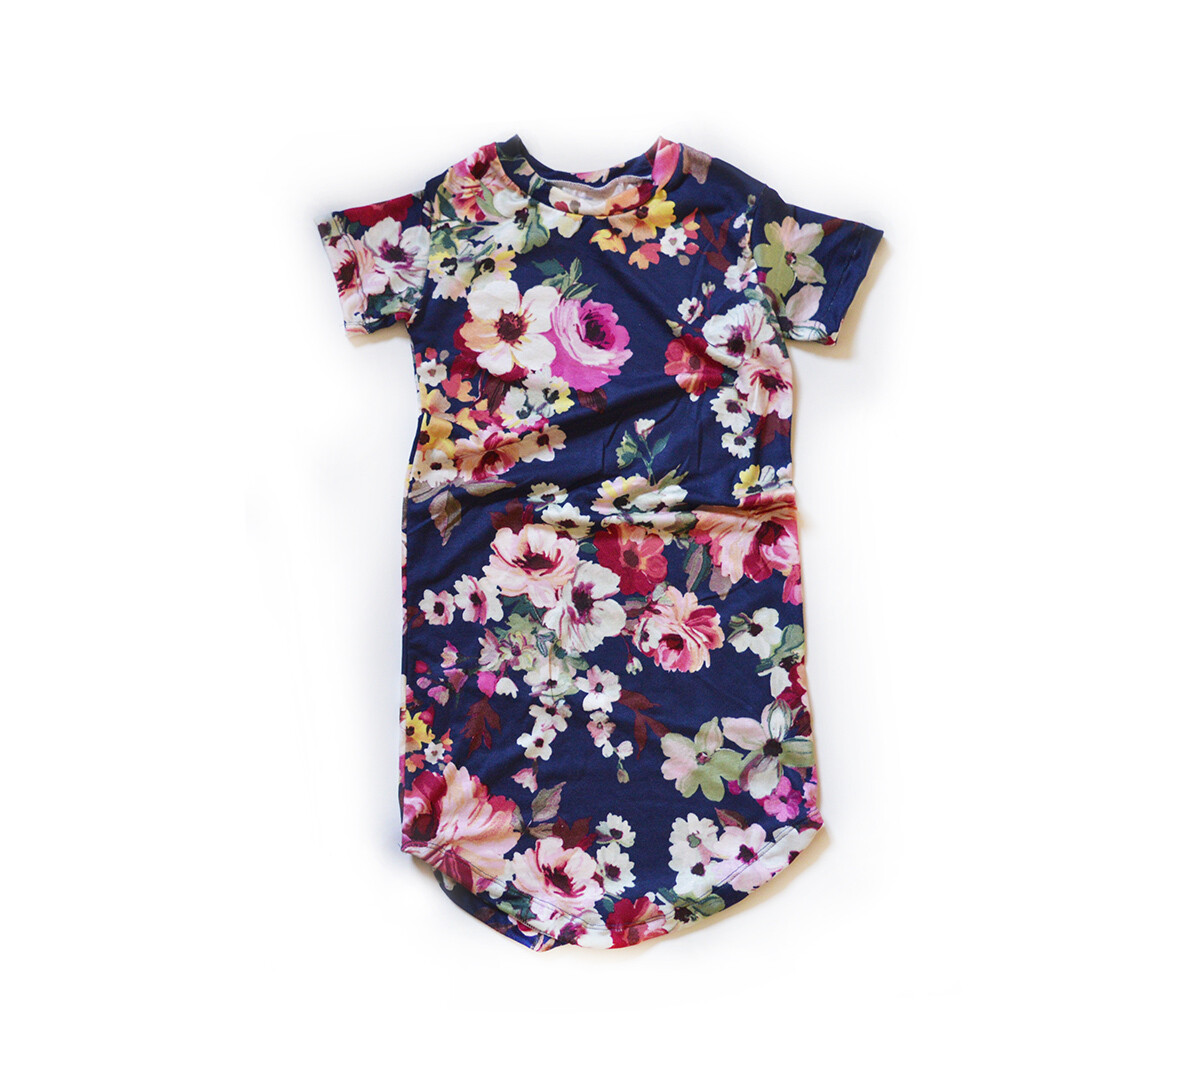 Little Sprout™ Cotton T-Shirt Dress in Navy Floral | NEW Fall 2019